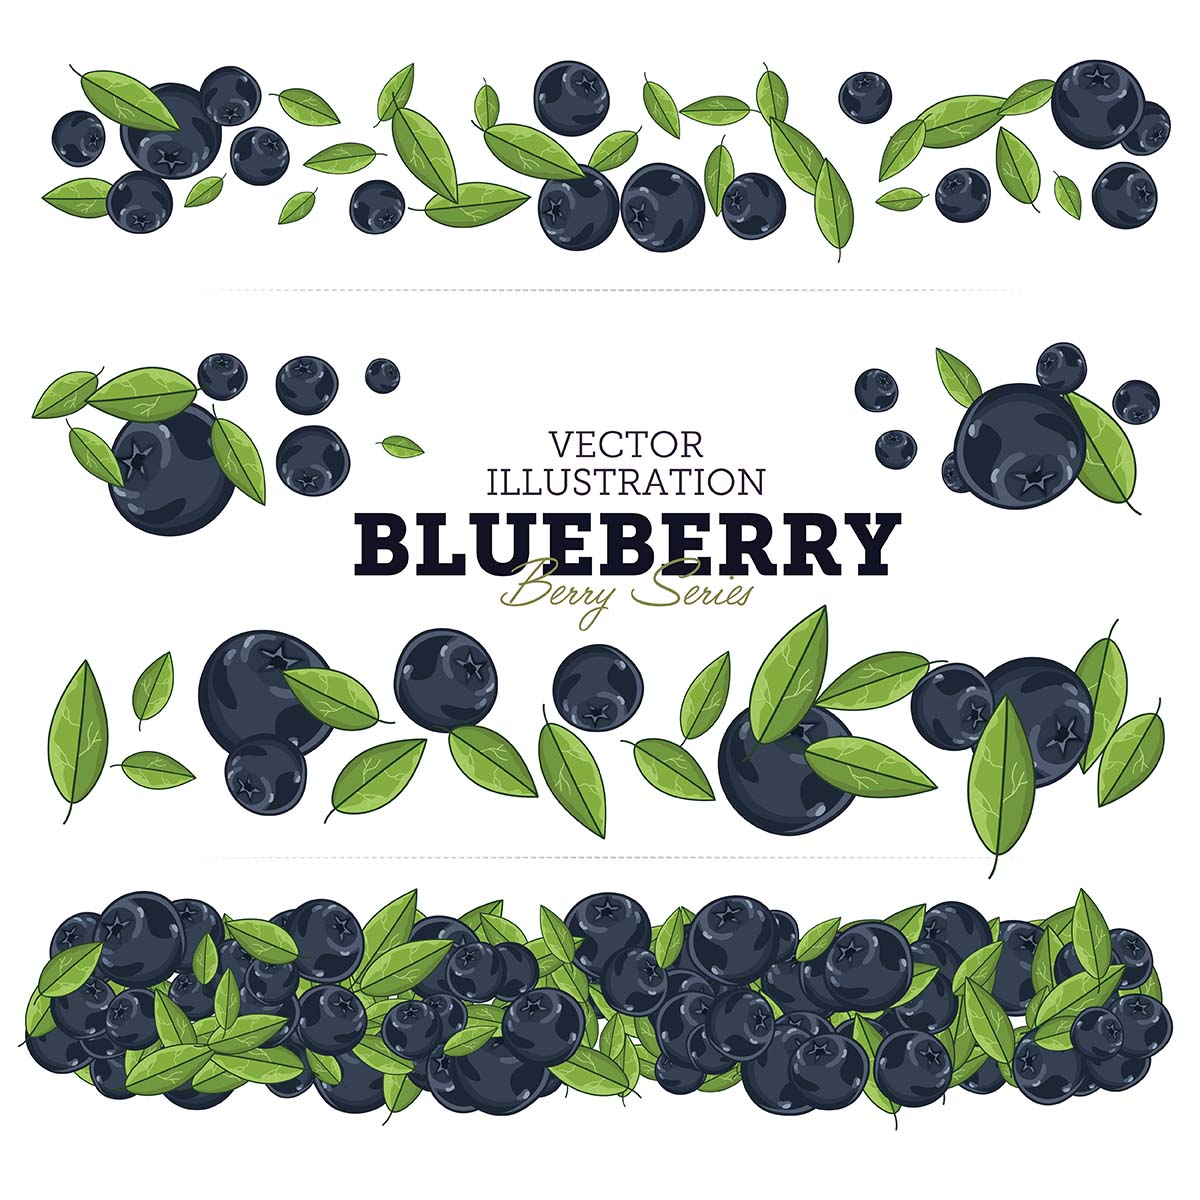 Juicy blueberries vector illustration